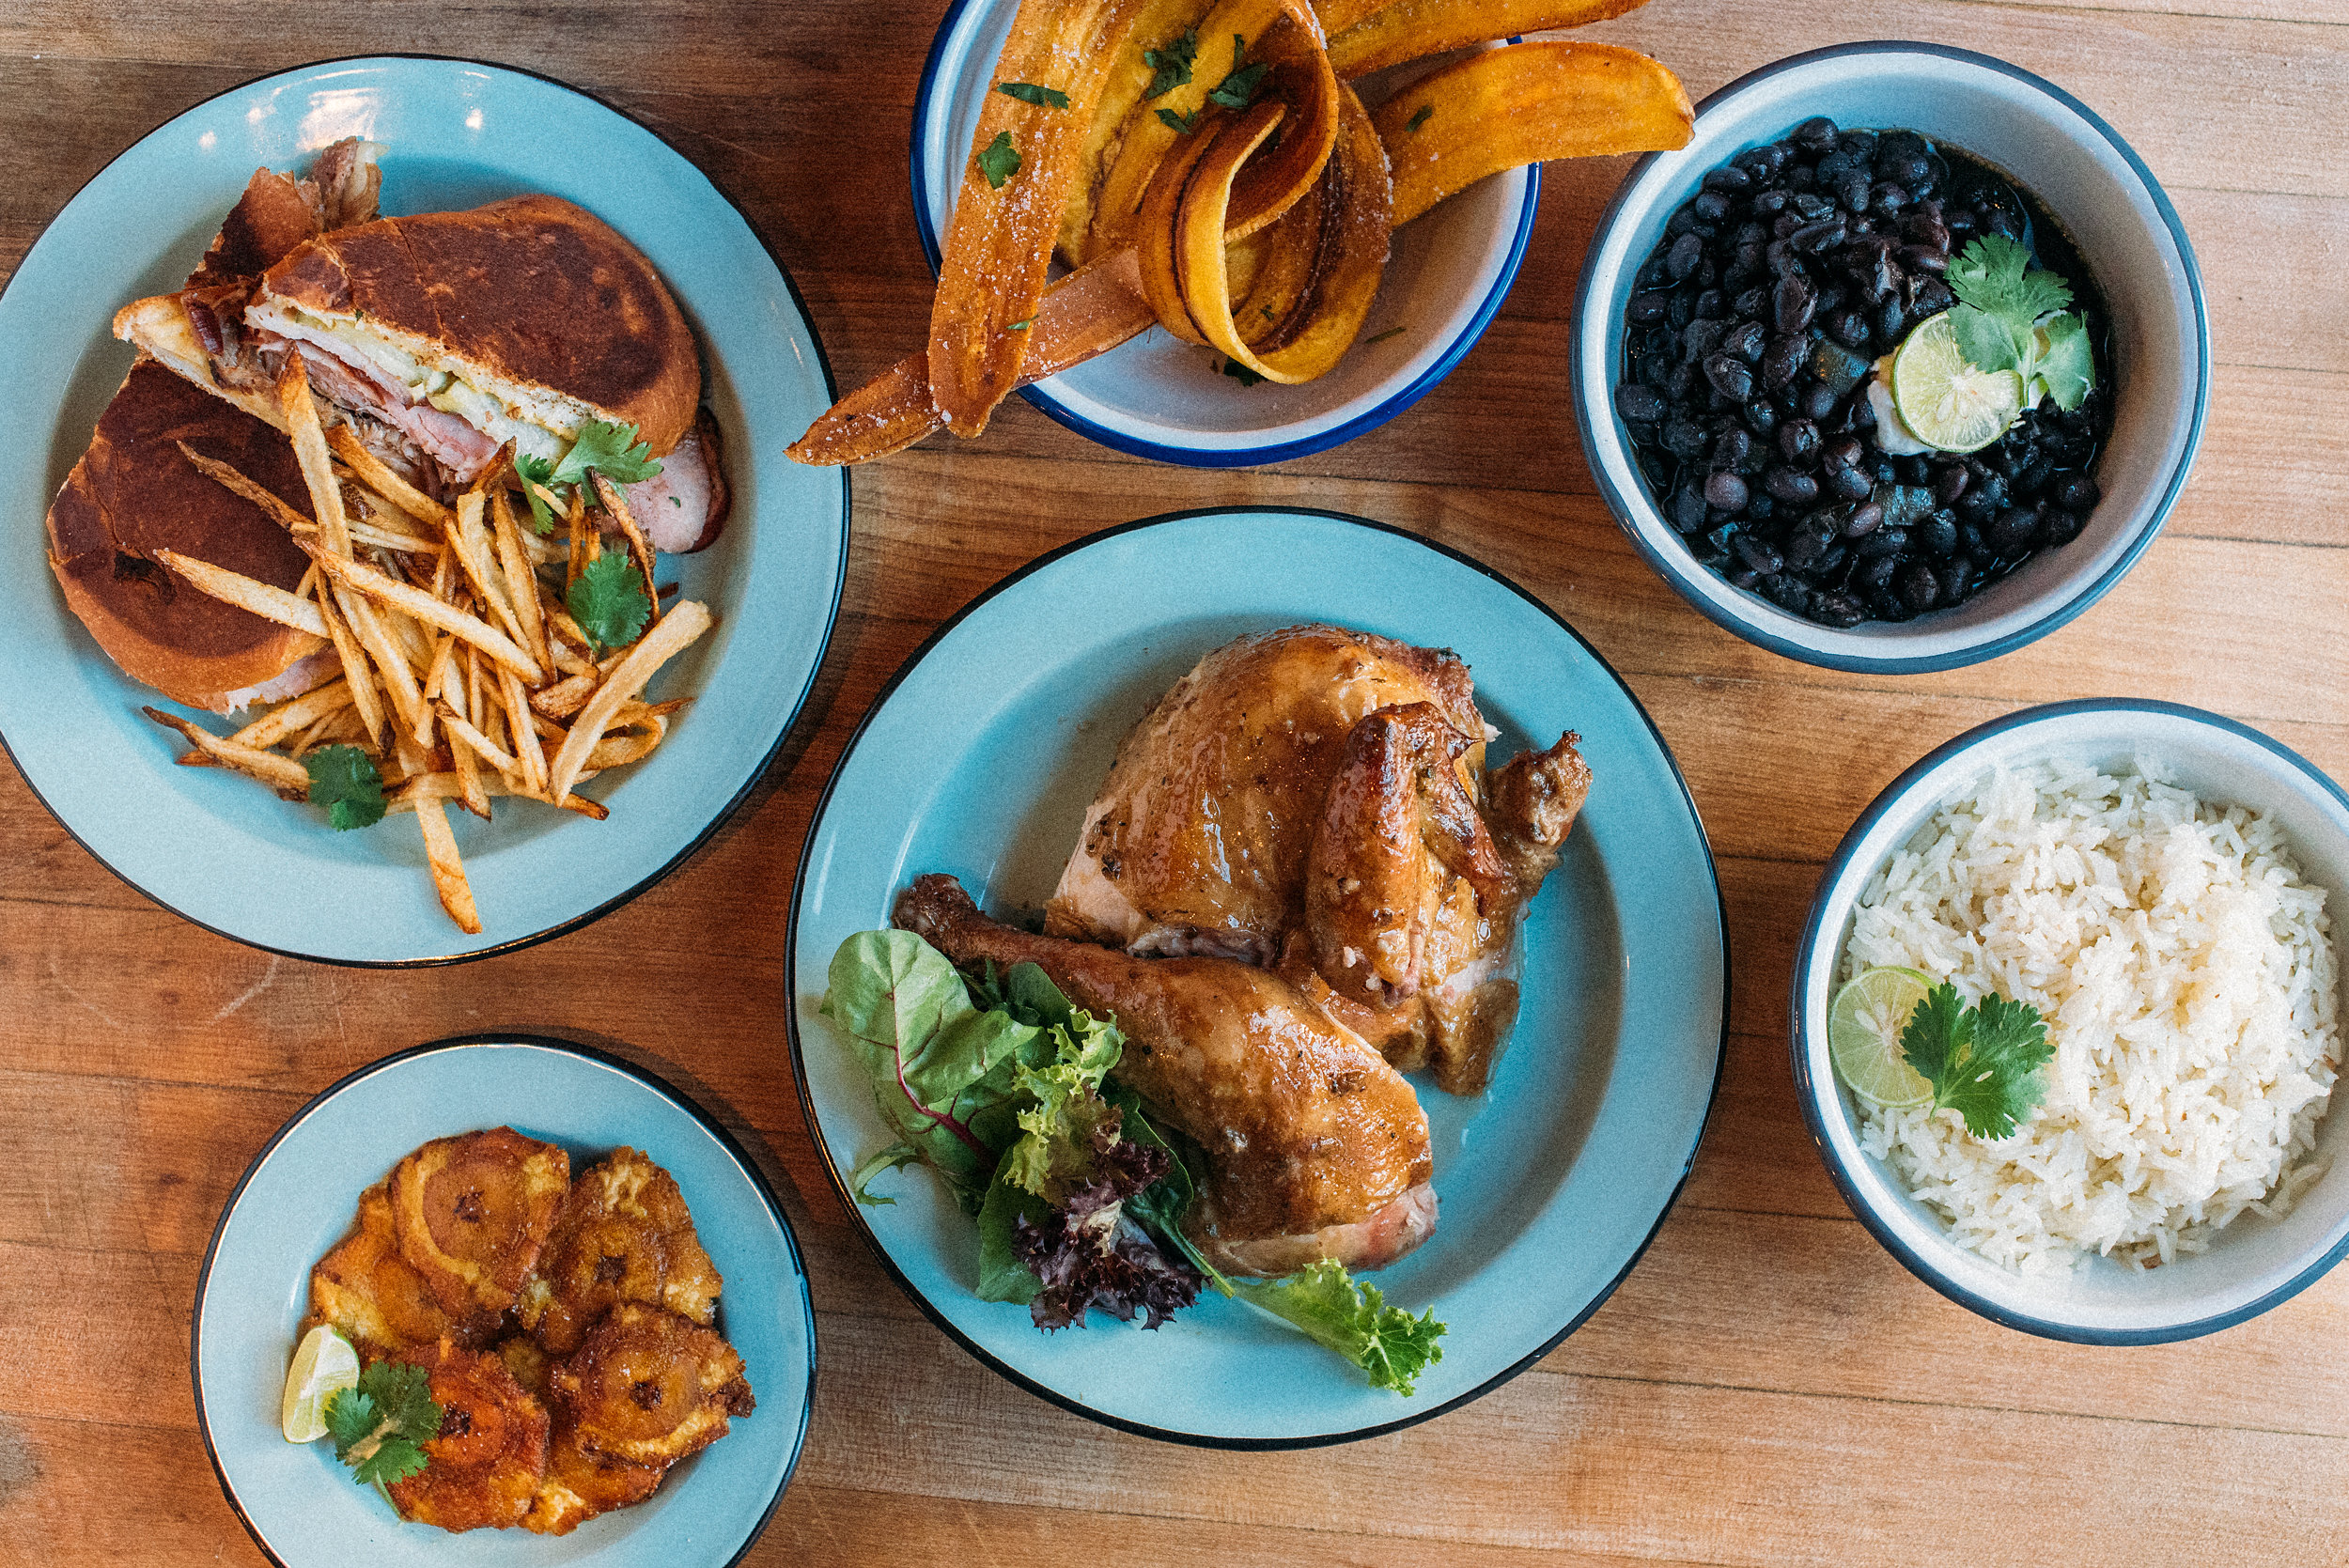 Afro-Caribbean Grill From Farmerbrown Team Opens Its Doors to the Fillmore